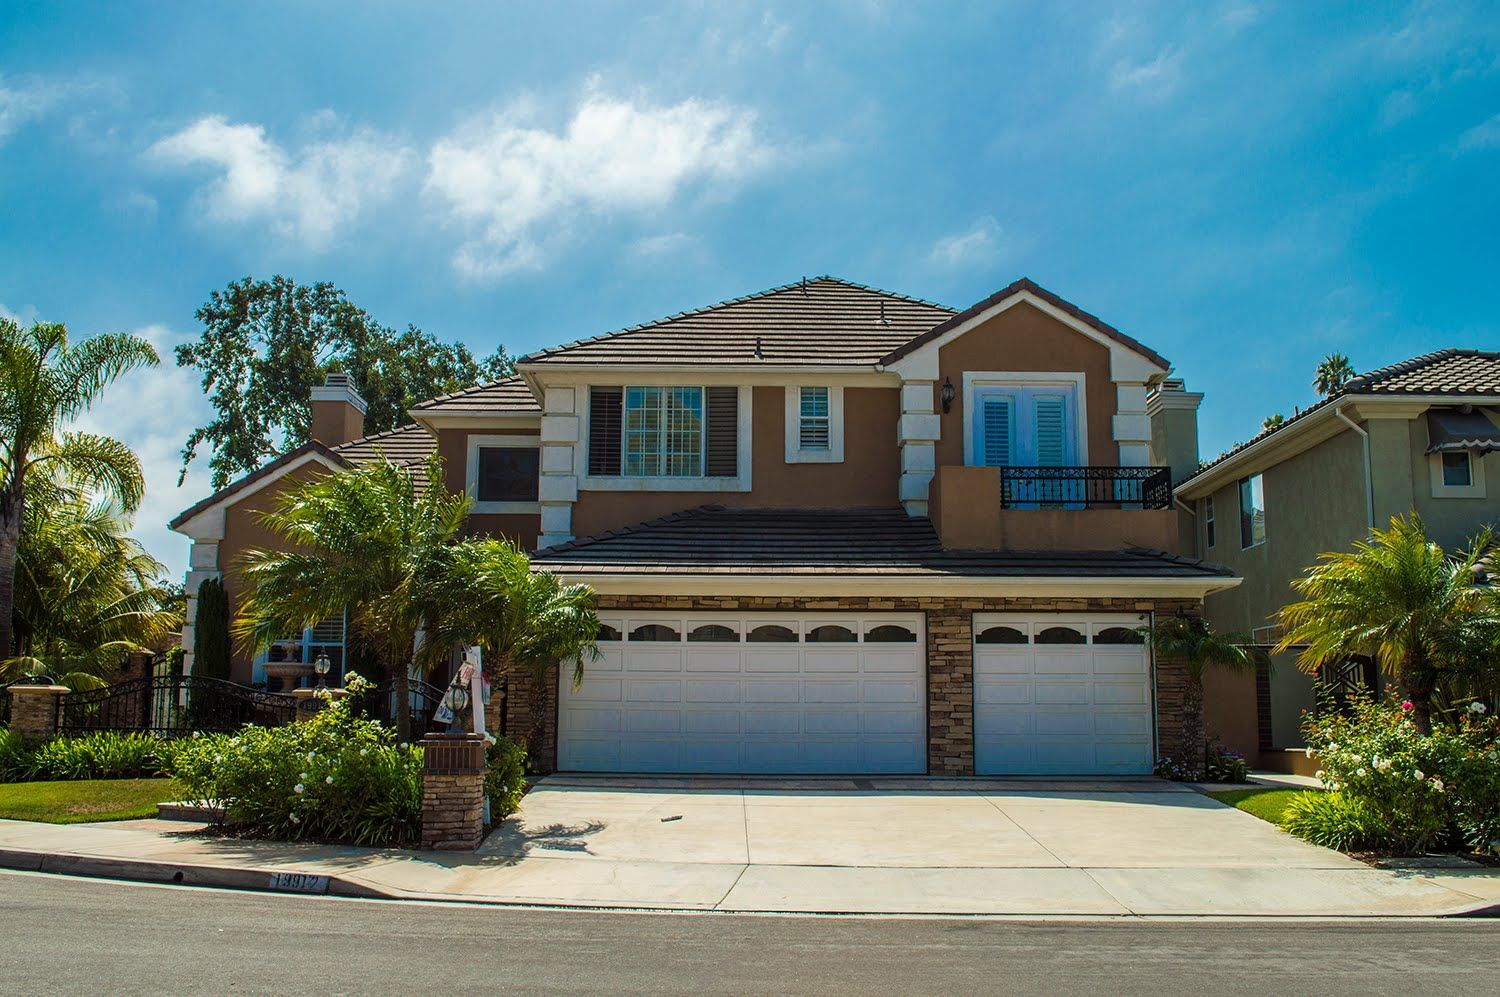 19912 Newfoundland Circle Huntington Beach CA 92648 - Contact Kallie Knutsen to set up a custom listing search for yourself!